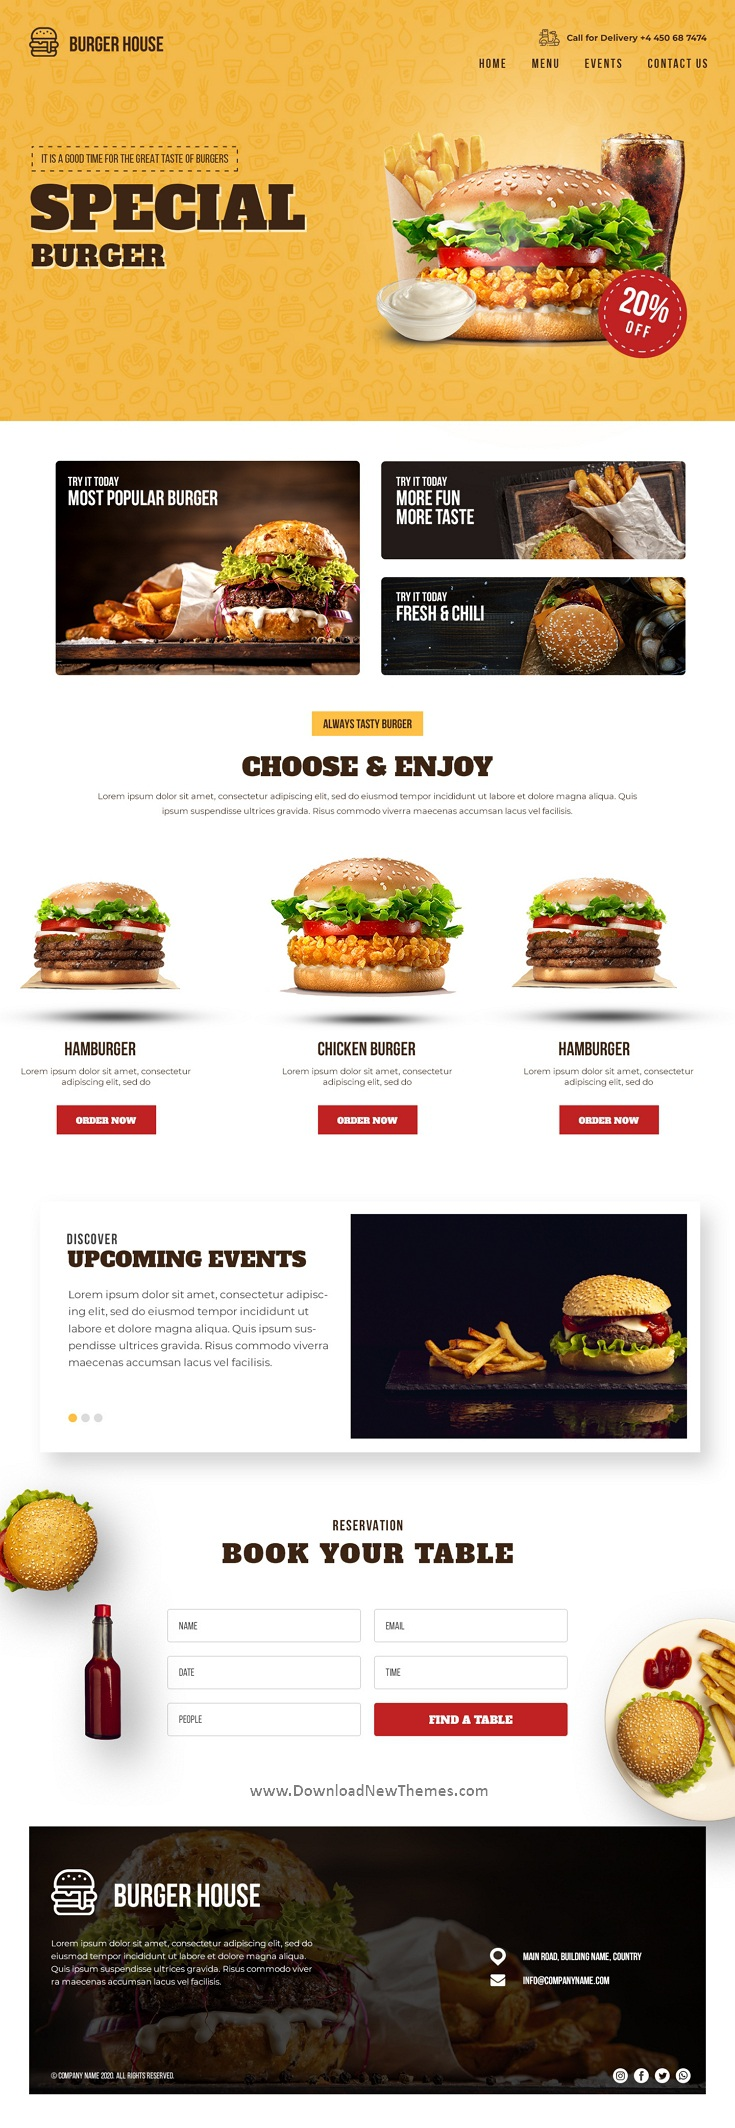 Fast Food & Restaurant Landing Page Template